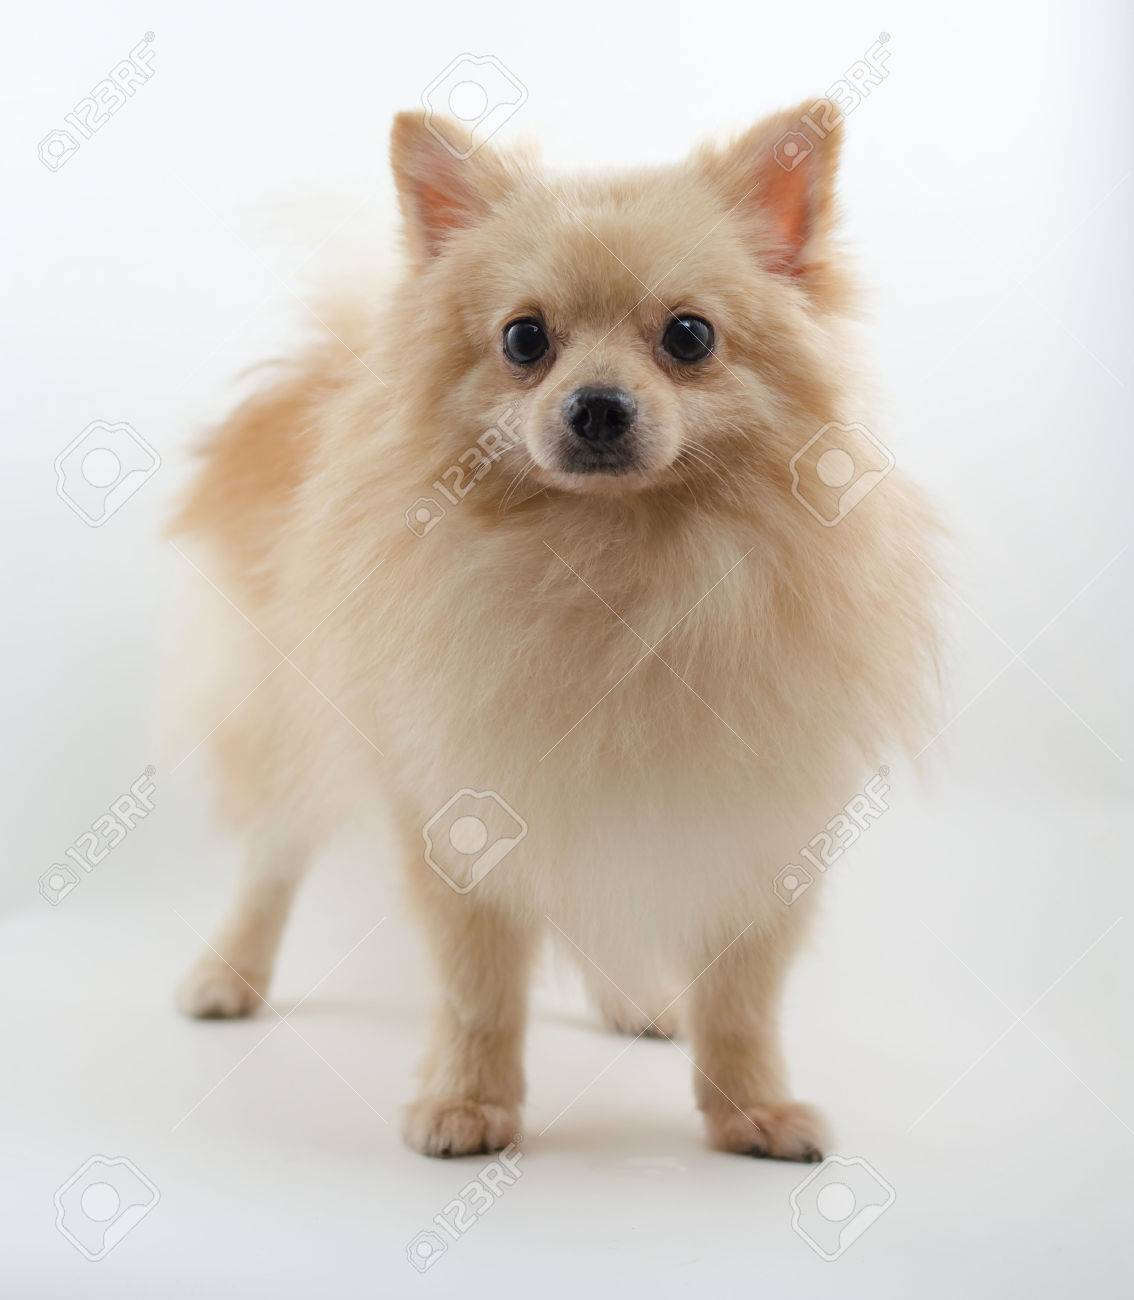 Pomeranian Dog Sitting Stock Photo Picture And Royalty Free Image